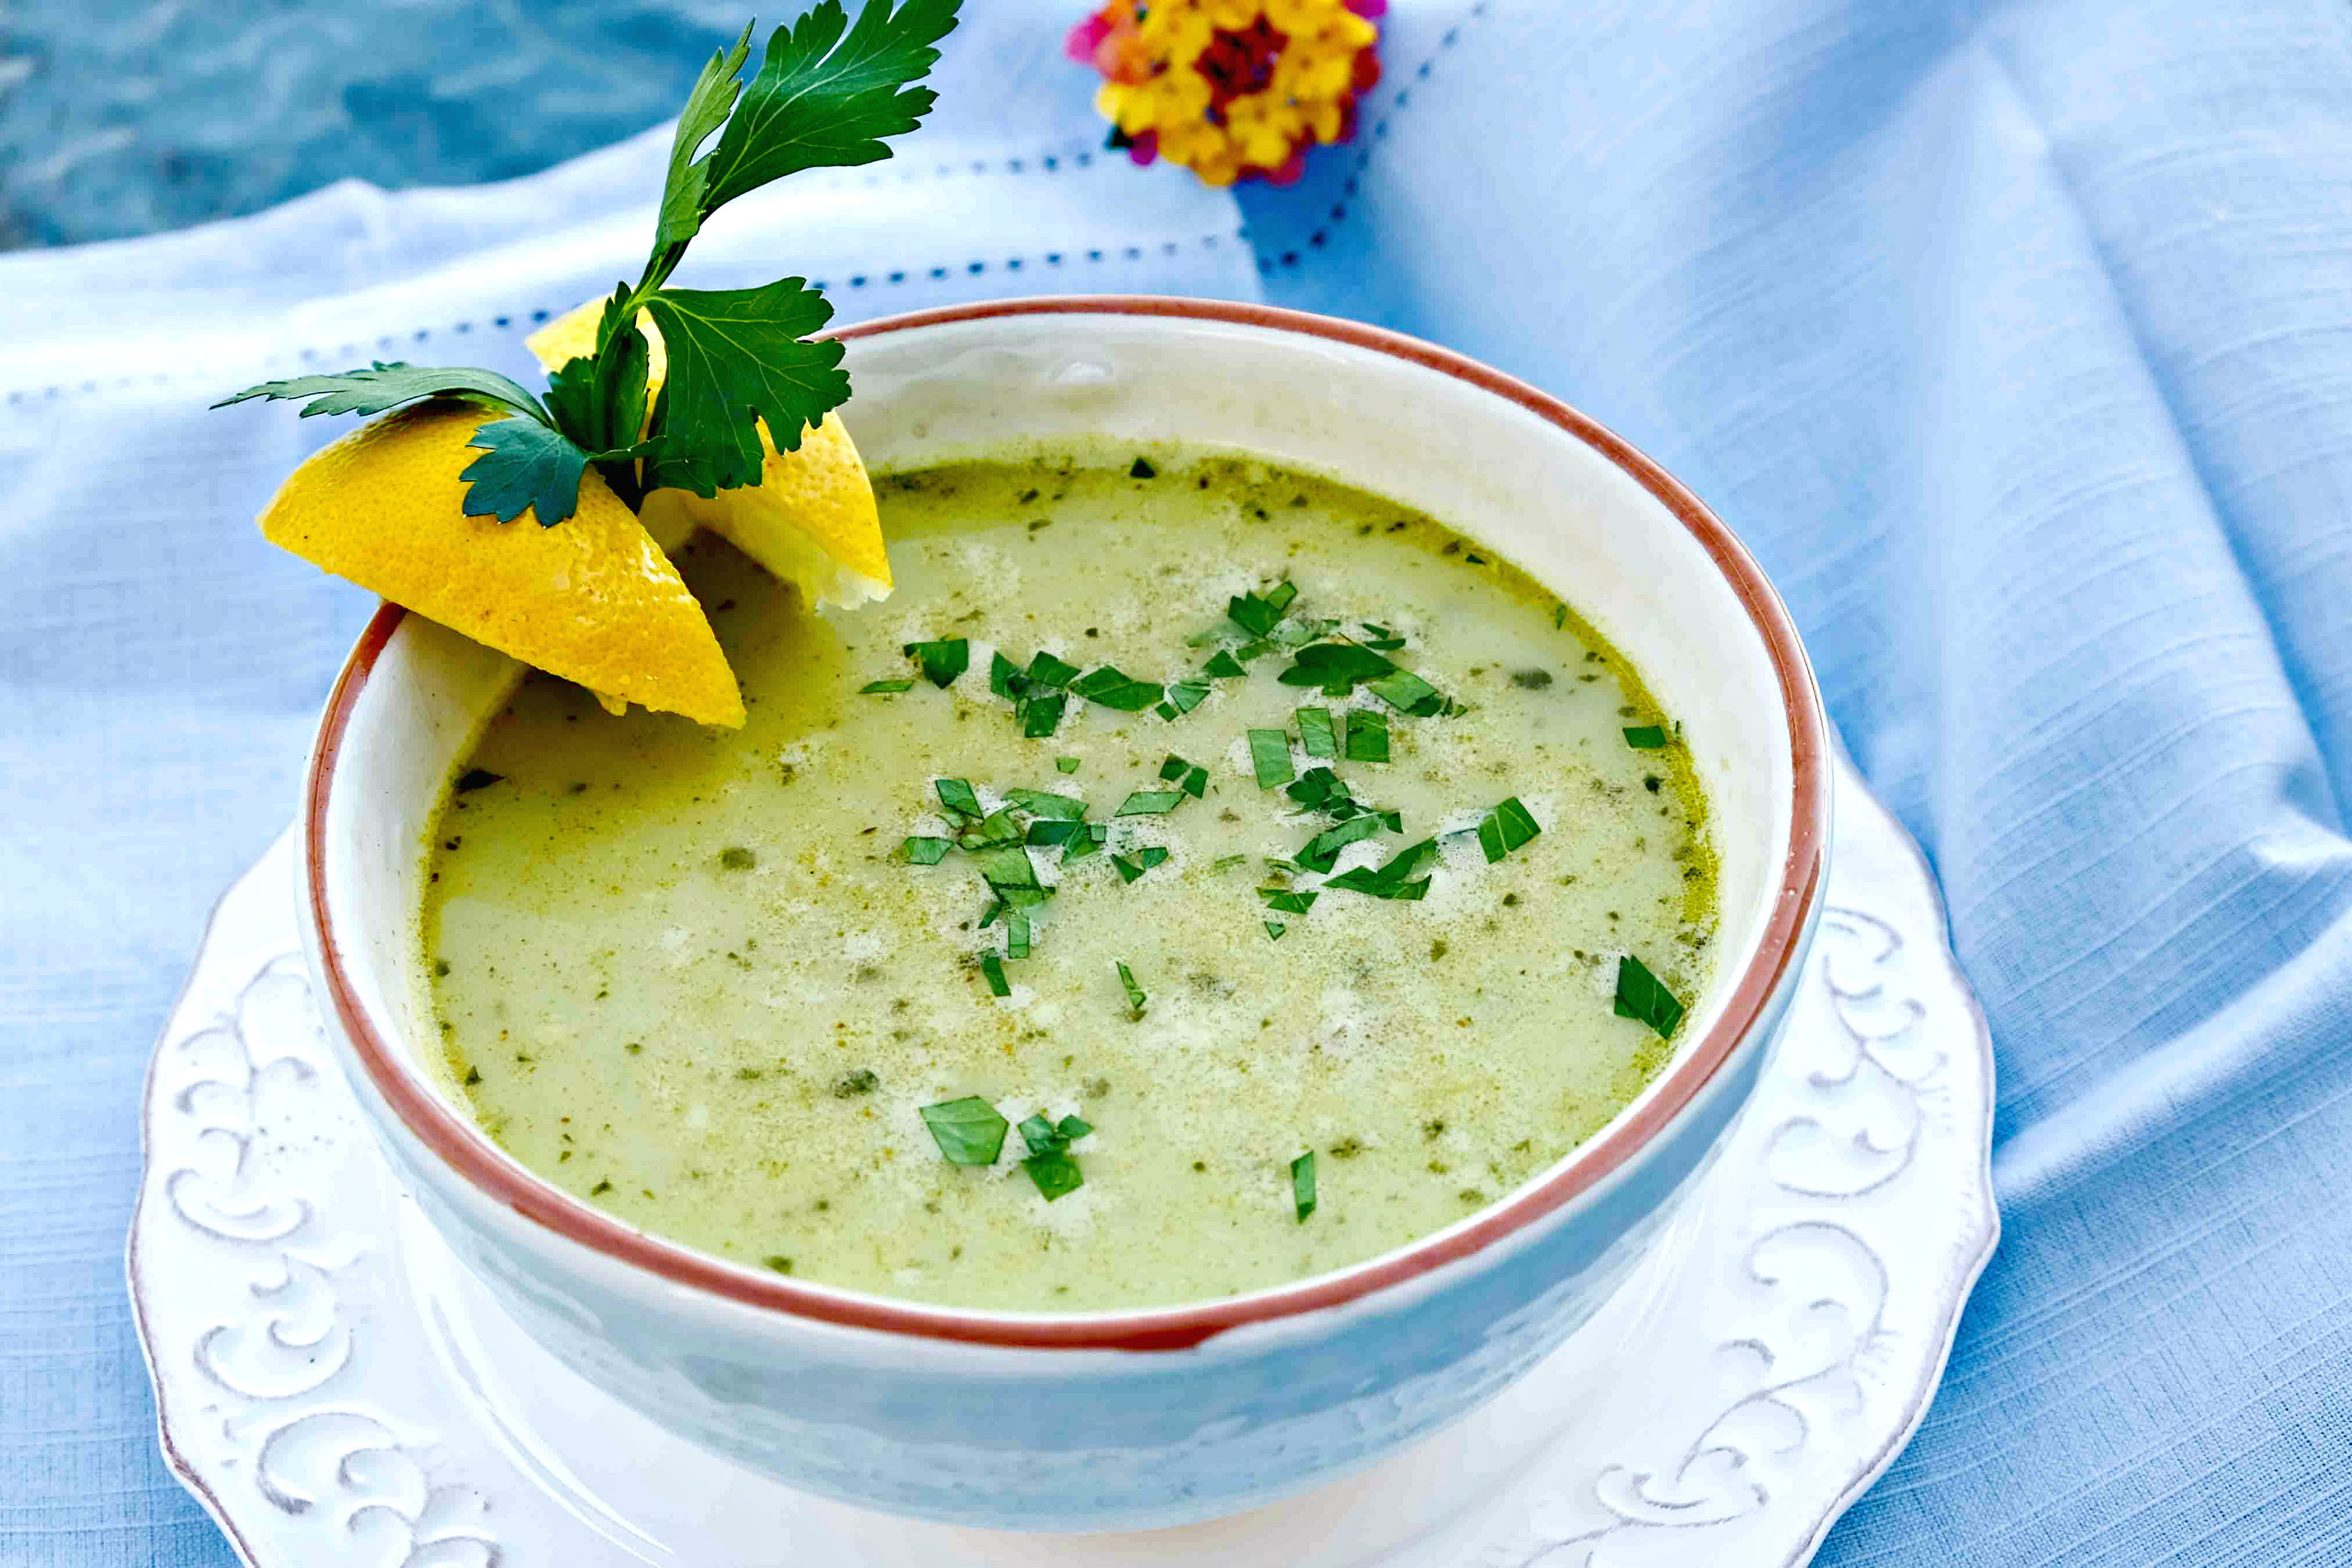 chickpea parsley soup, immune boosting